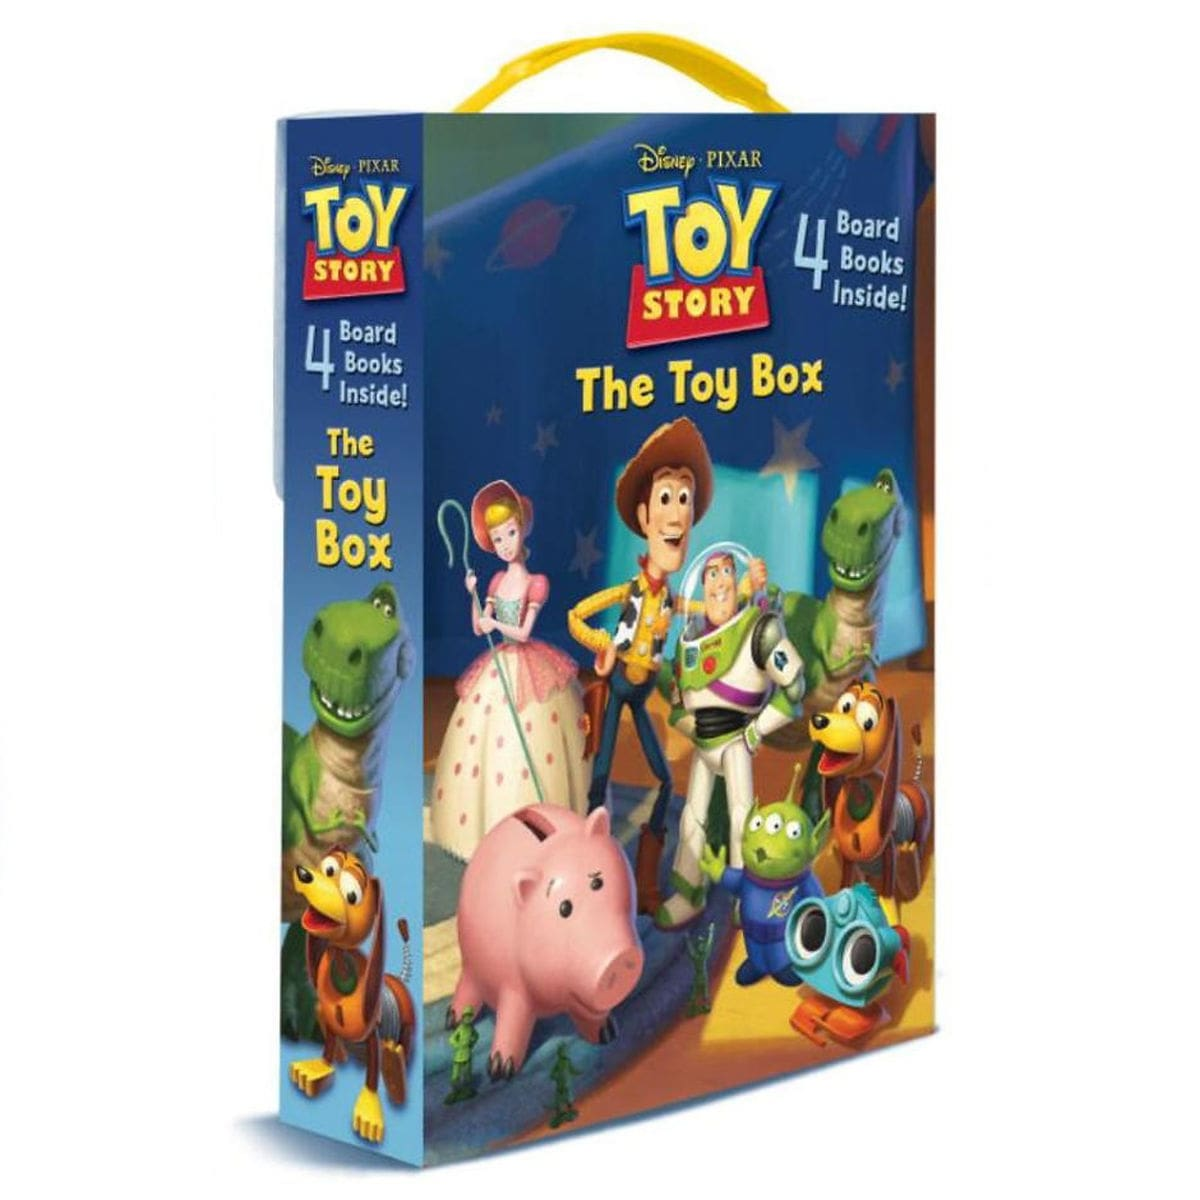 Toy Story: The Toy Box Books | shopDisney